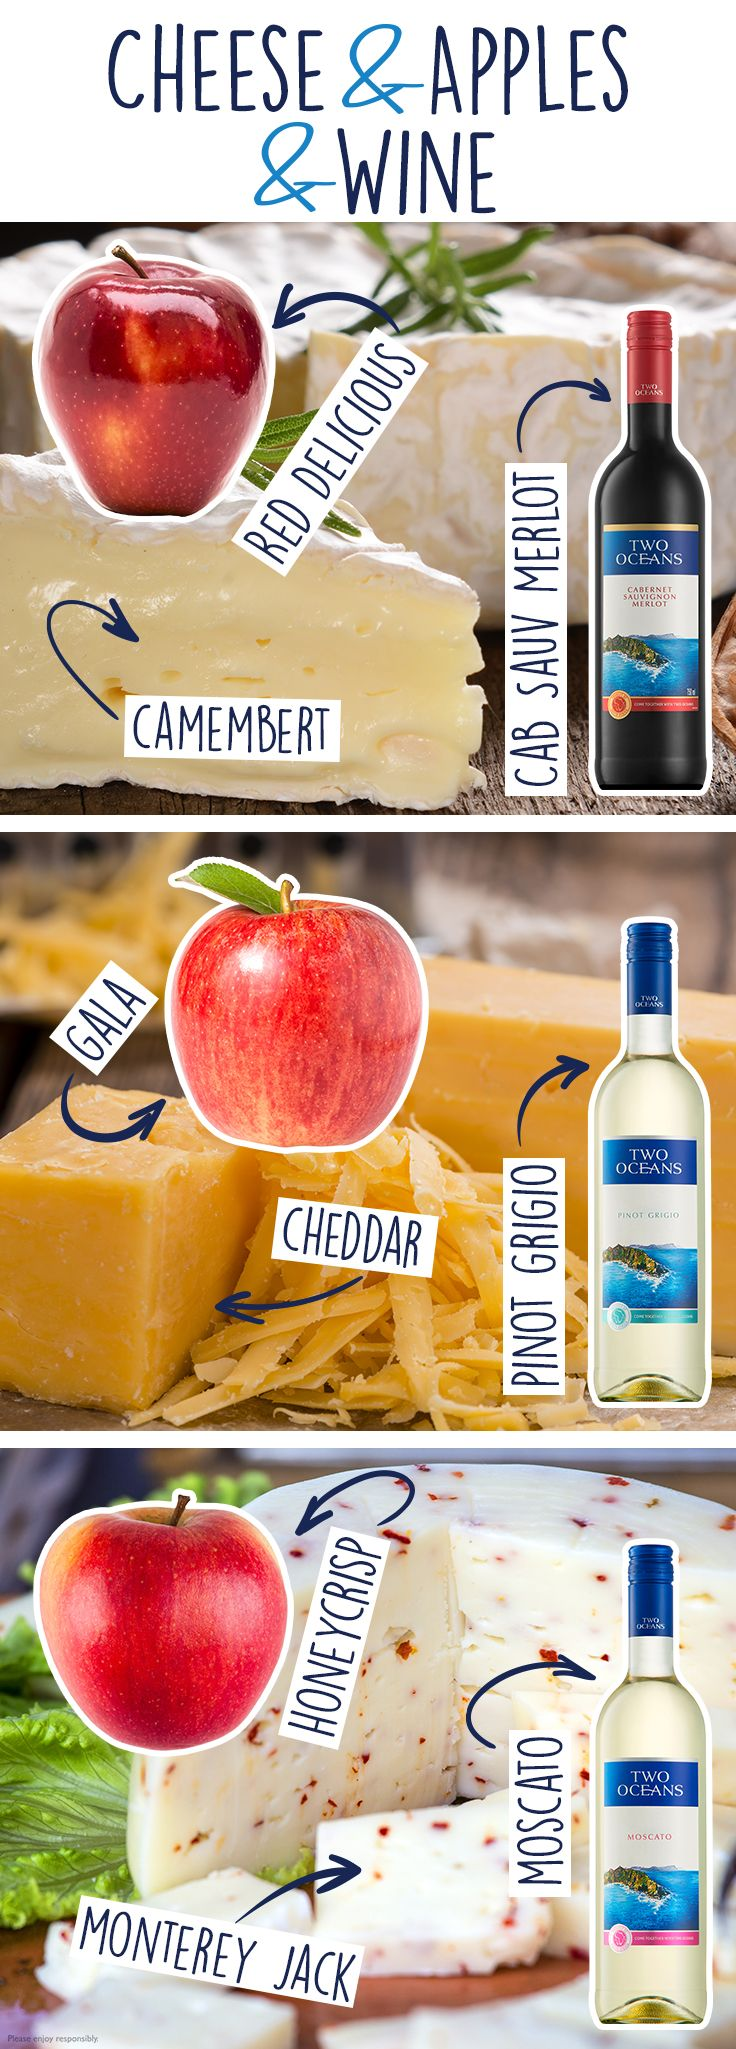 The season of plenty is here! Here are a few wine and cheese pairings to help you make the most of your bounty.